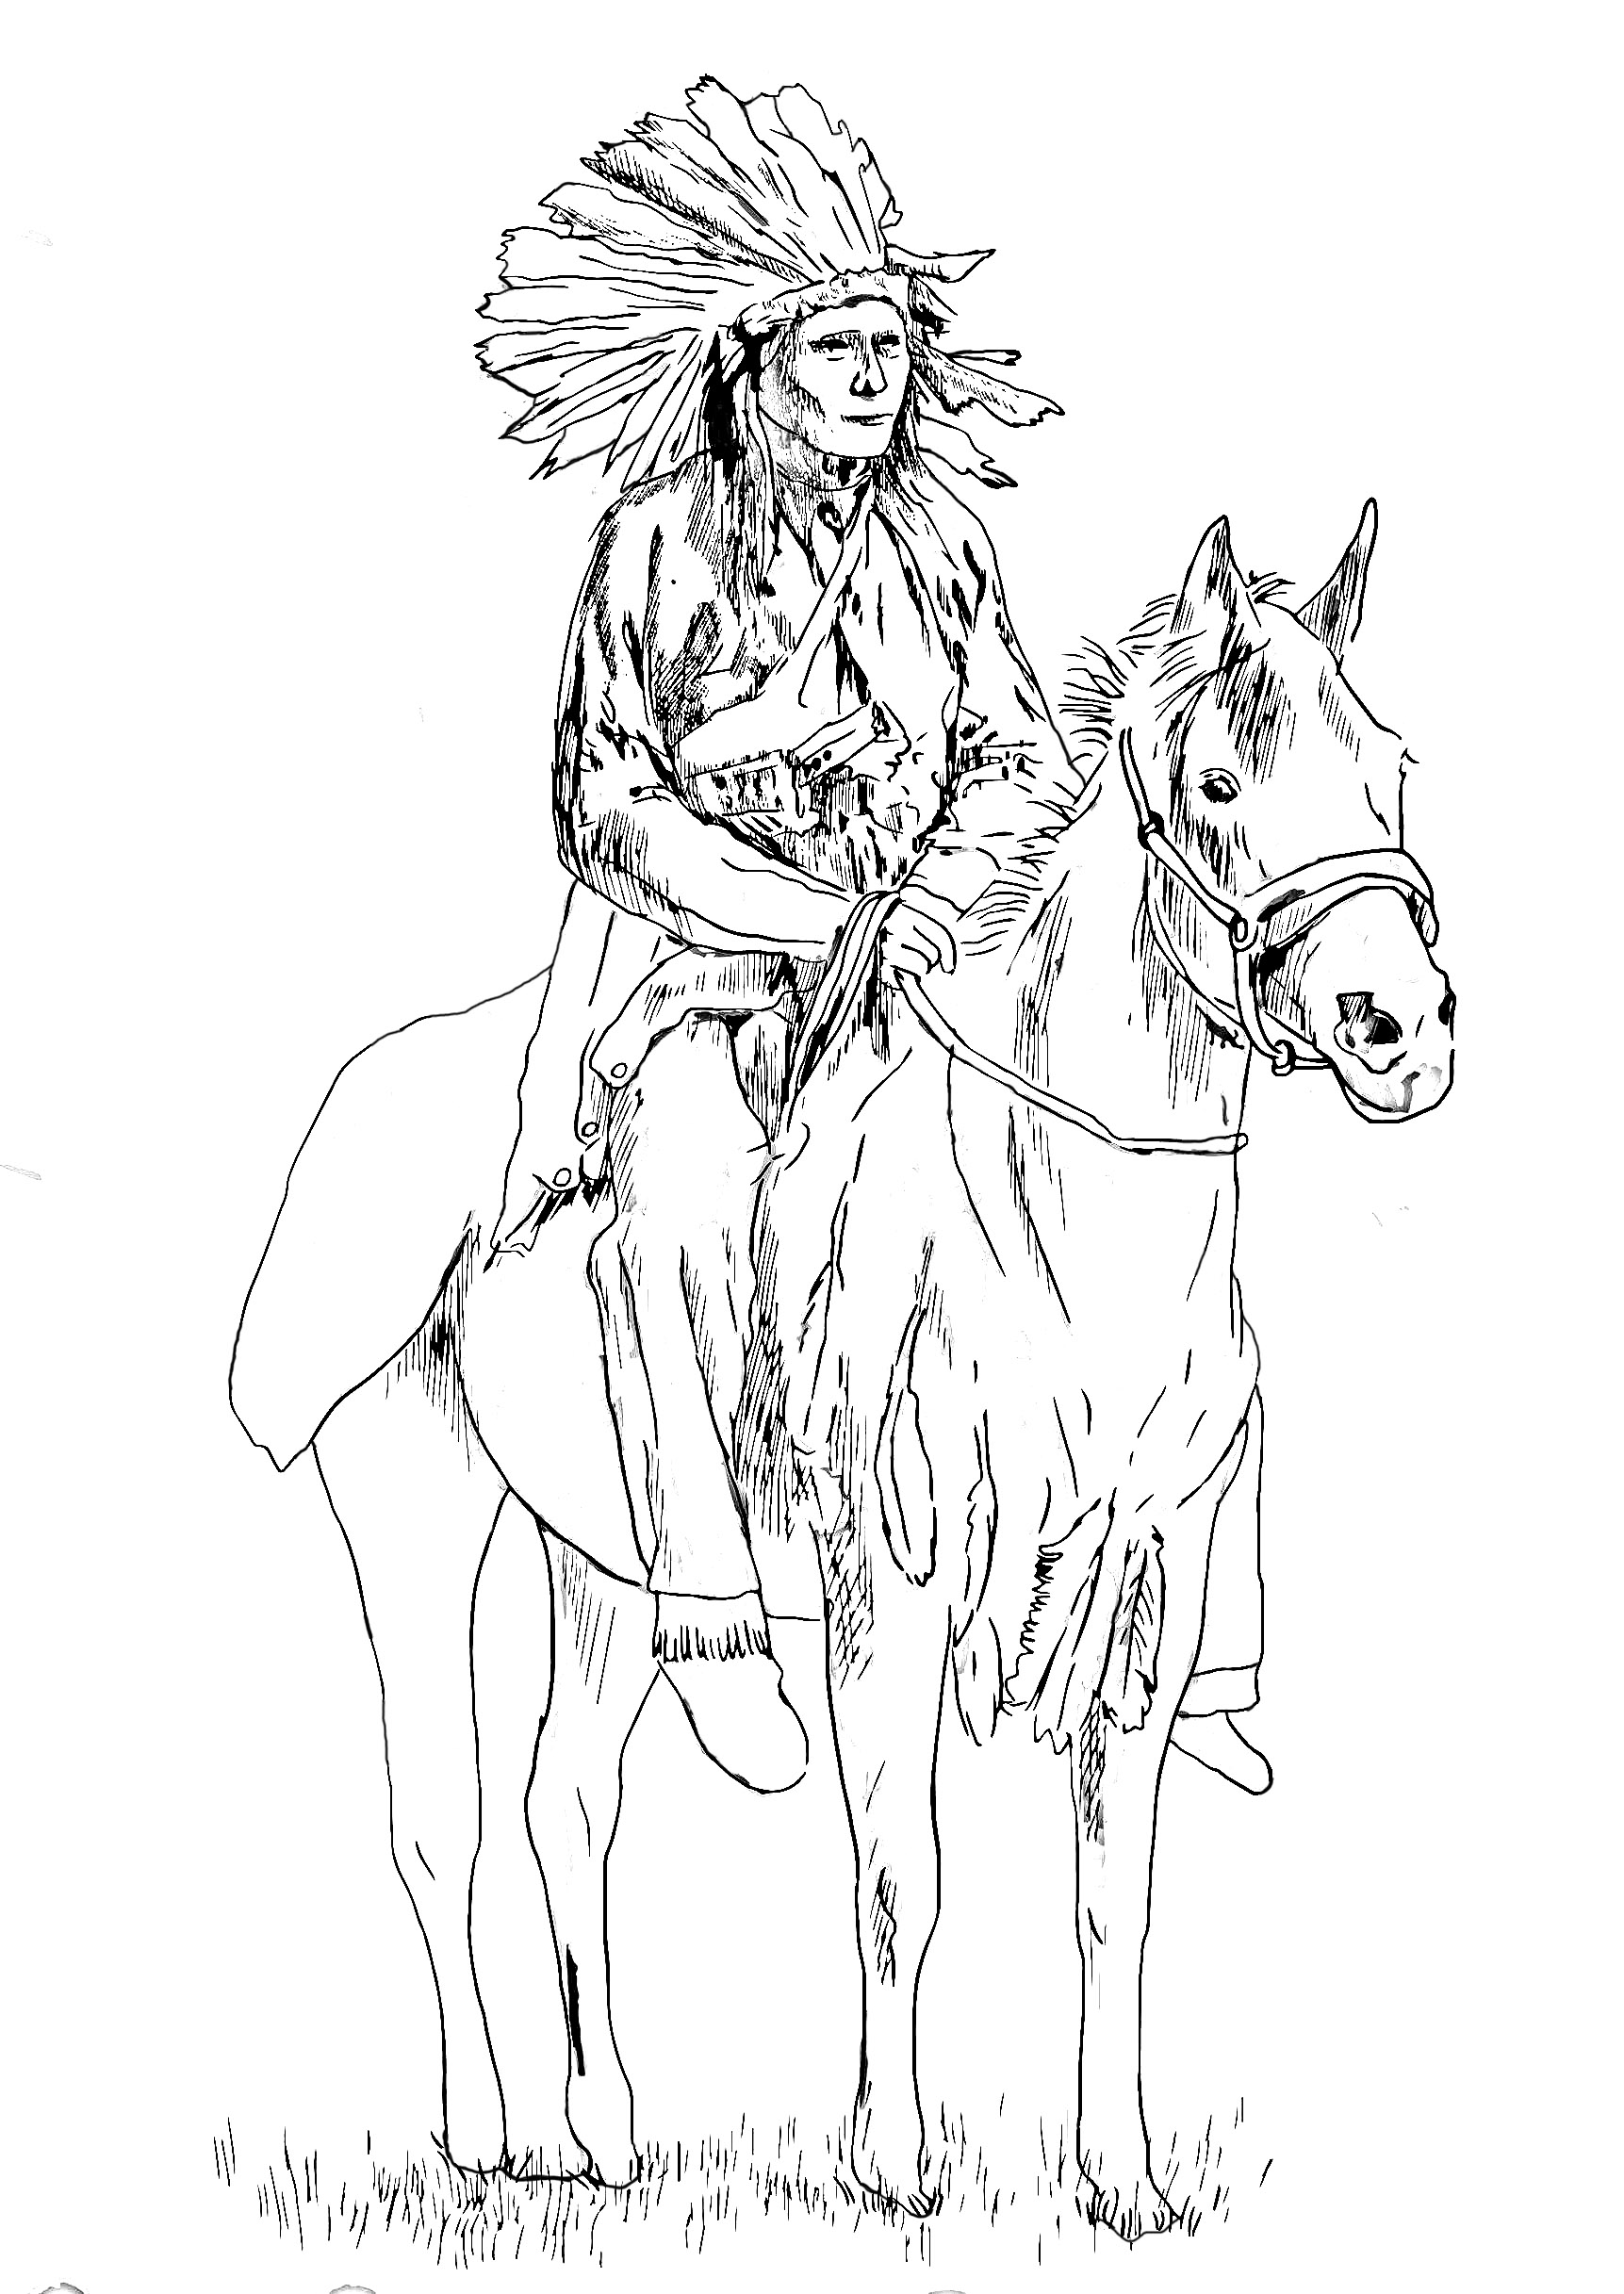 free printable native american coloring pages native american art coloring pages printable bing images american native printable pages coloring free